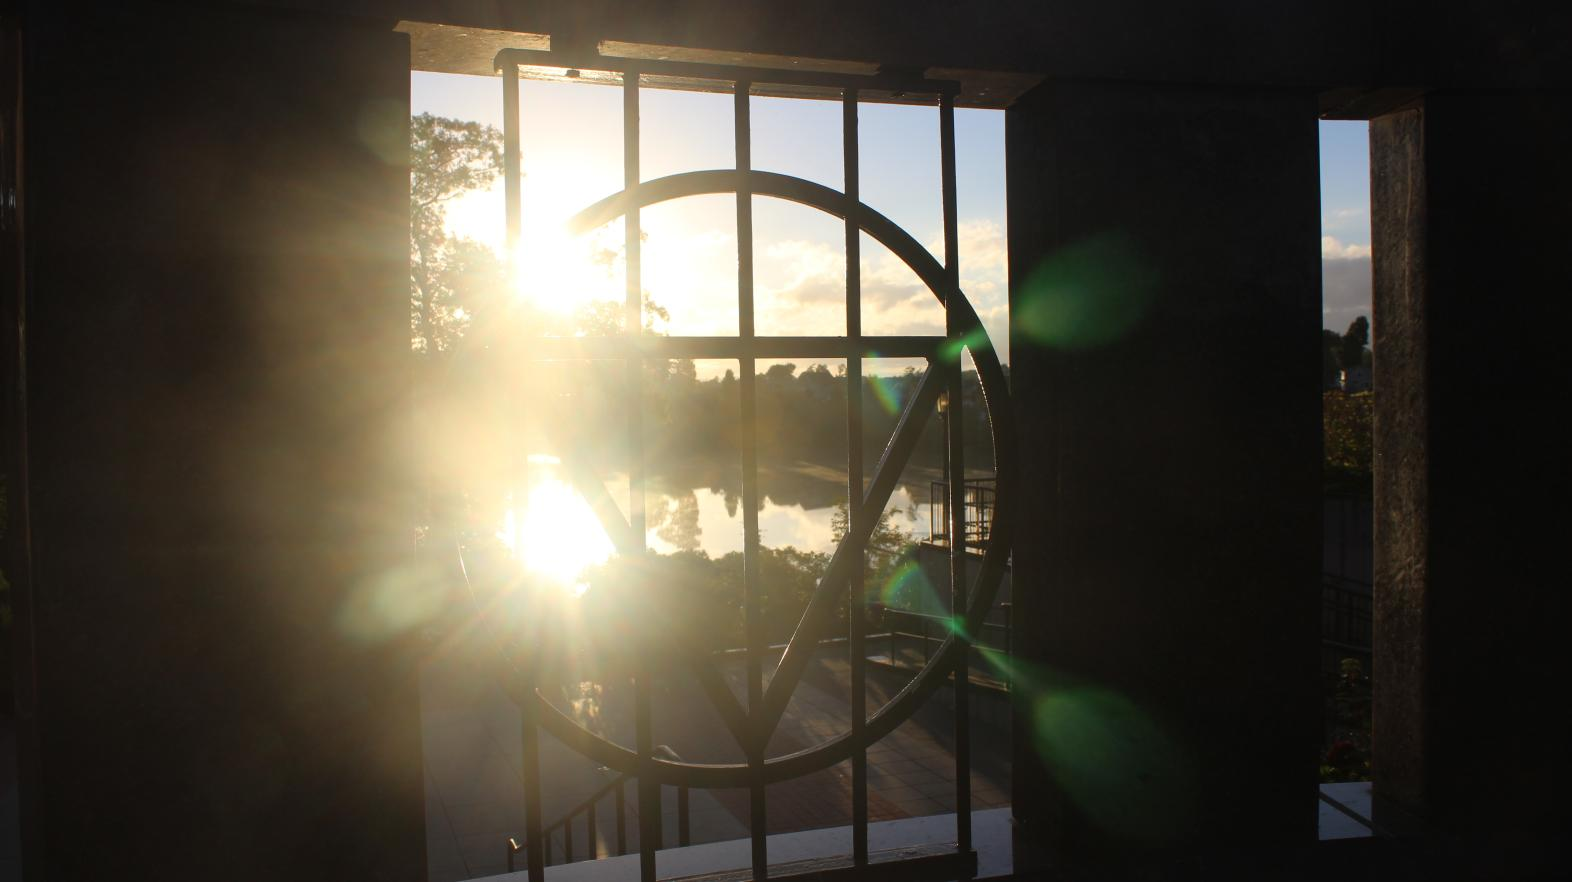 Our Gulick triangle frames the sun rising over Lake Massasoit in this photograph from graduate student Paige Moran.